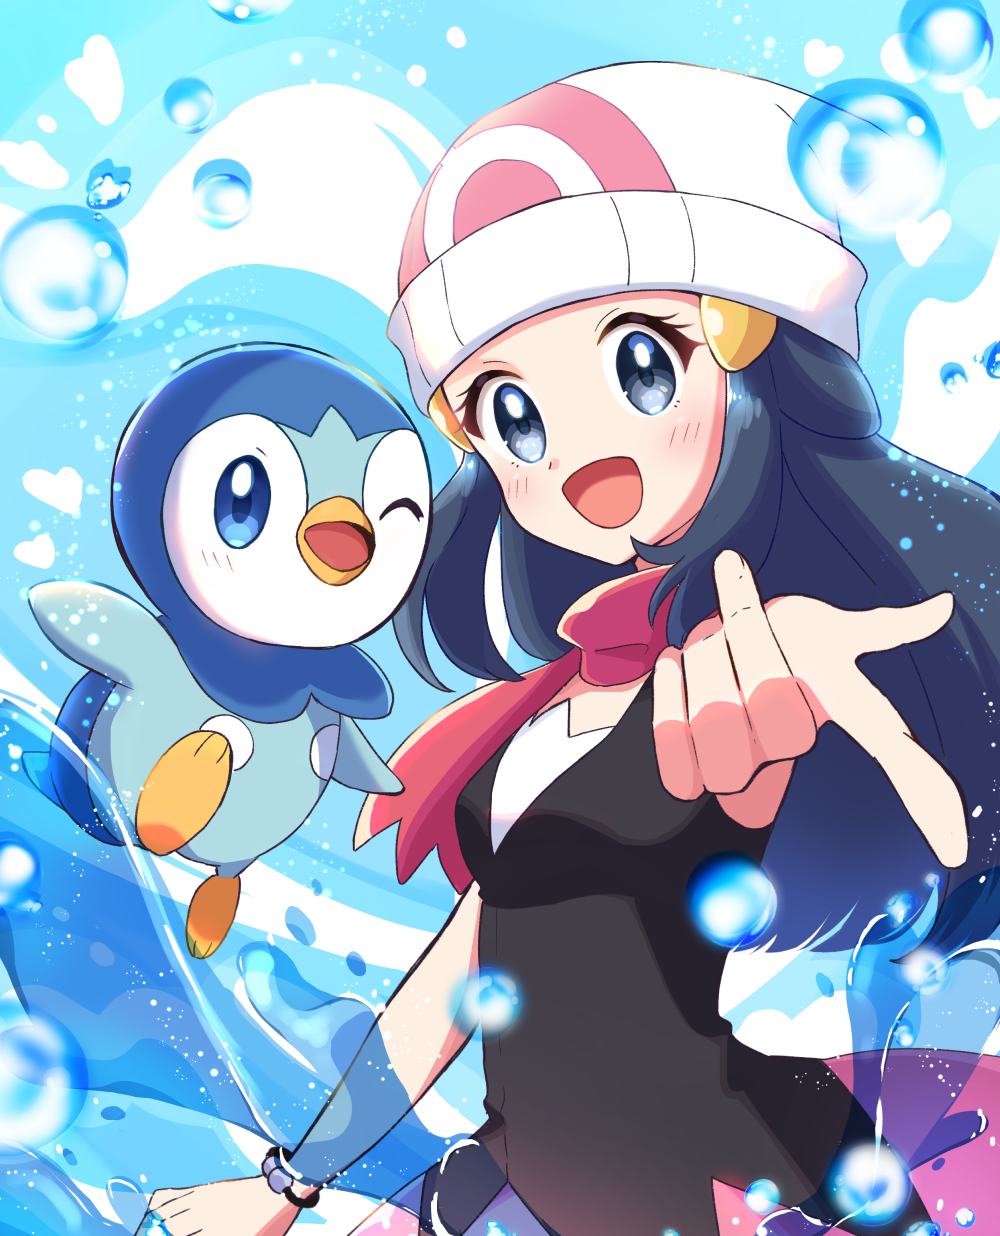 1girl :d beanie black_hair blush bracelet breasts bubble commentary_request dawn_(pokemon) eyelashes gen_4_pokemon grey_eyes hair_ornament hairclip haru_(haruxxe) hat heart highres jewelry long_hair looking_at_viewer open_mouth piplup pointing pokemon pokemon_(anime) pokemon_(creature) pokemon_swsh_(anime) purple_scarf scarf sleeveless smile starter_pokemon tongue white_headwear